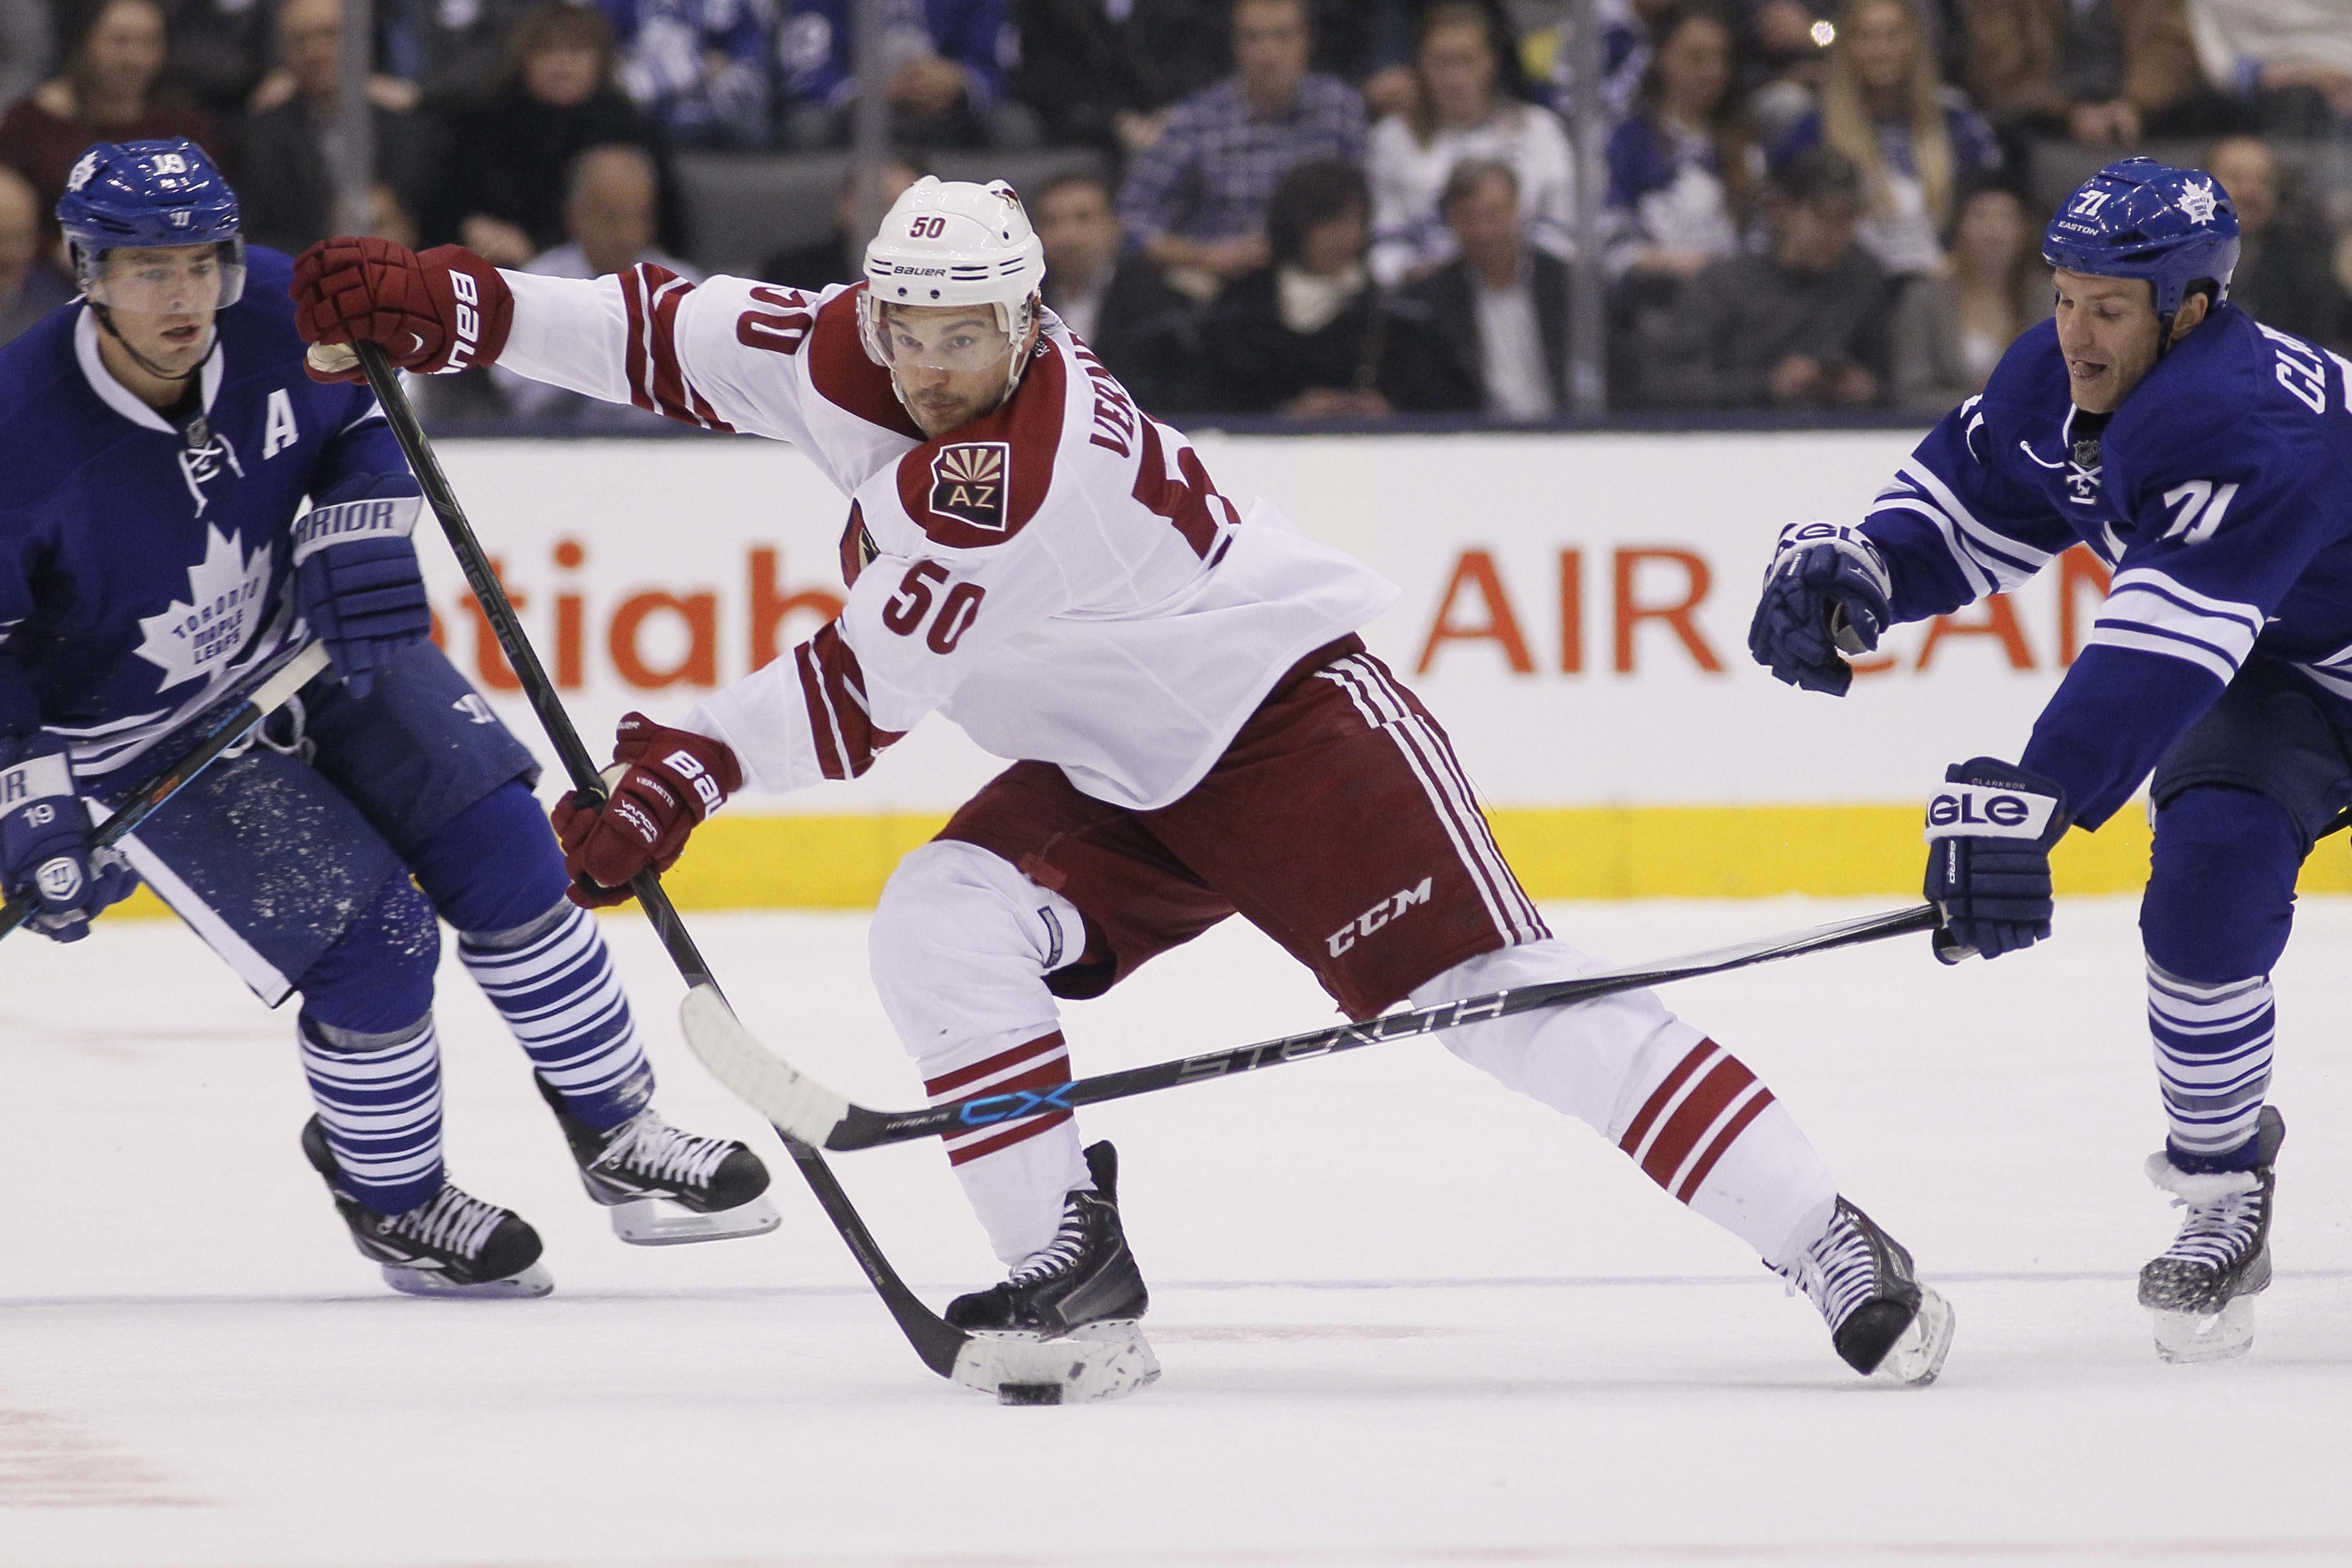 2015 NHL trade deadline: High prices for players, high stakes for teams